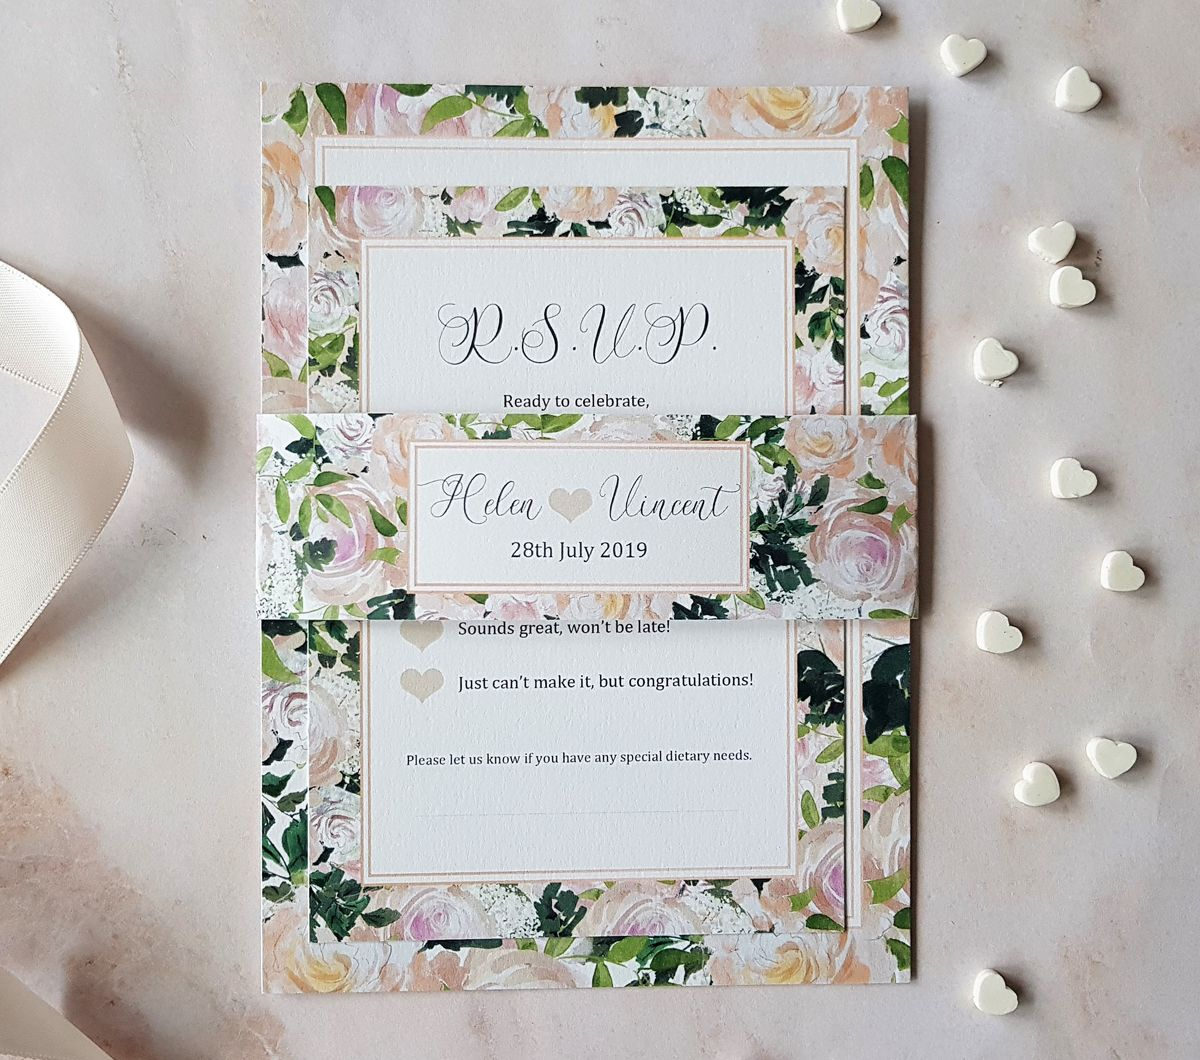 Bespoke Wedding Invitations: Boho Watercolor Floral Frame Bouquet Border Wedding Flat